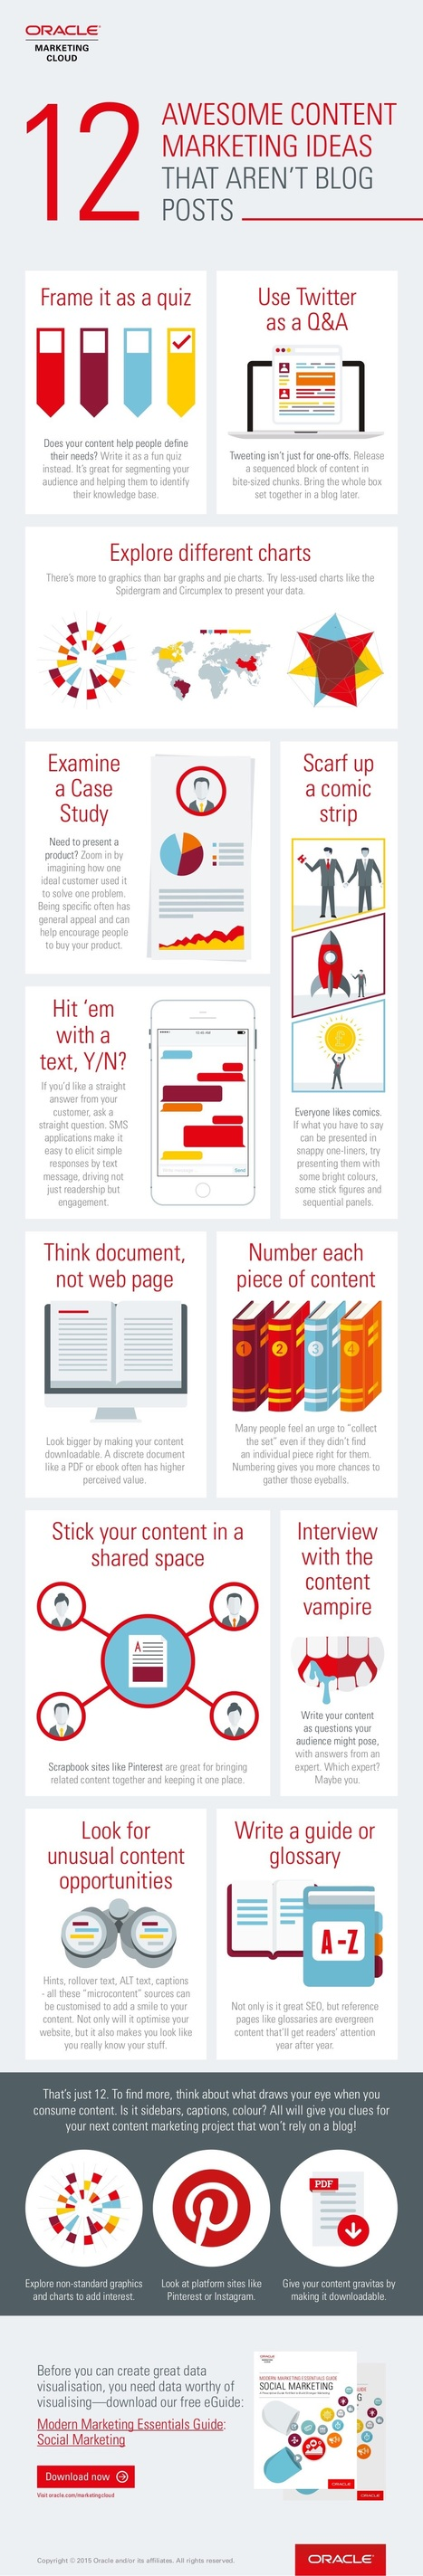 12 Creative #ContentMarketing Ideas That Don't Require a Blog - #infographic | MarketingHits | Scoop.it